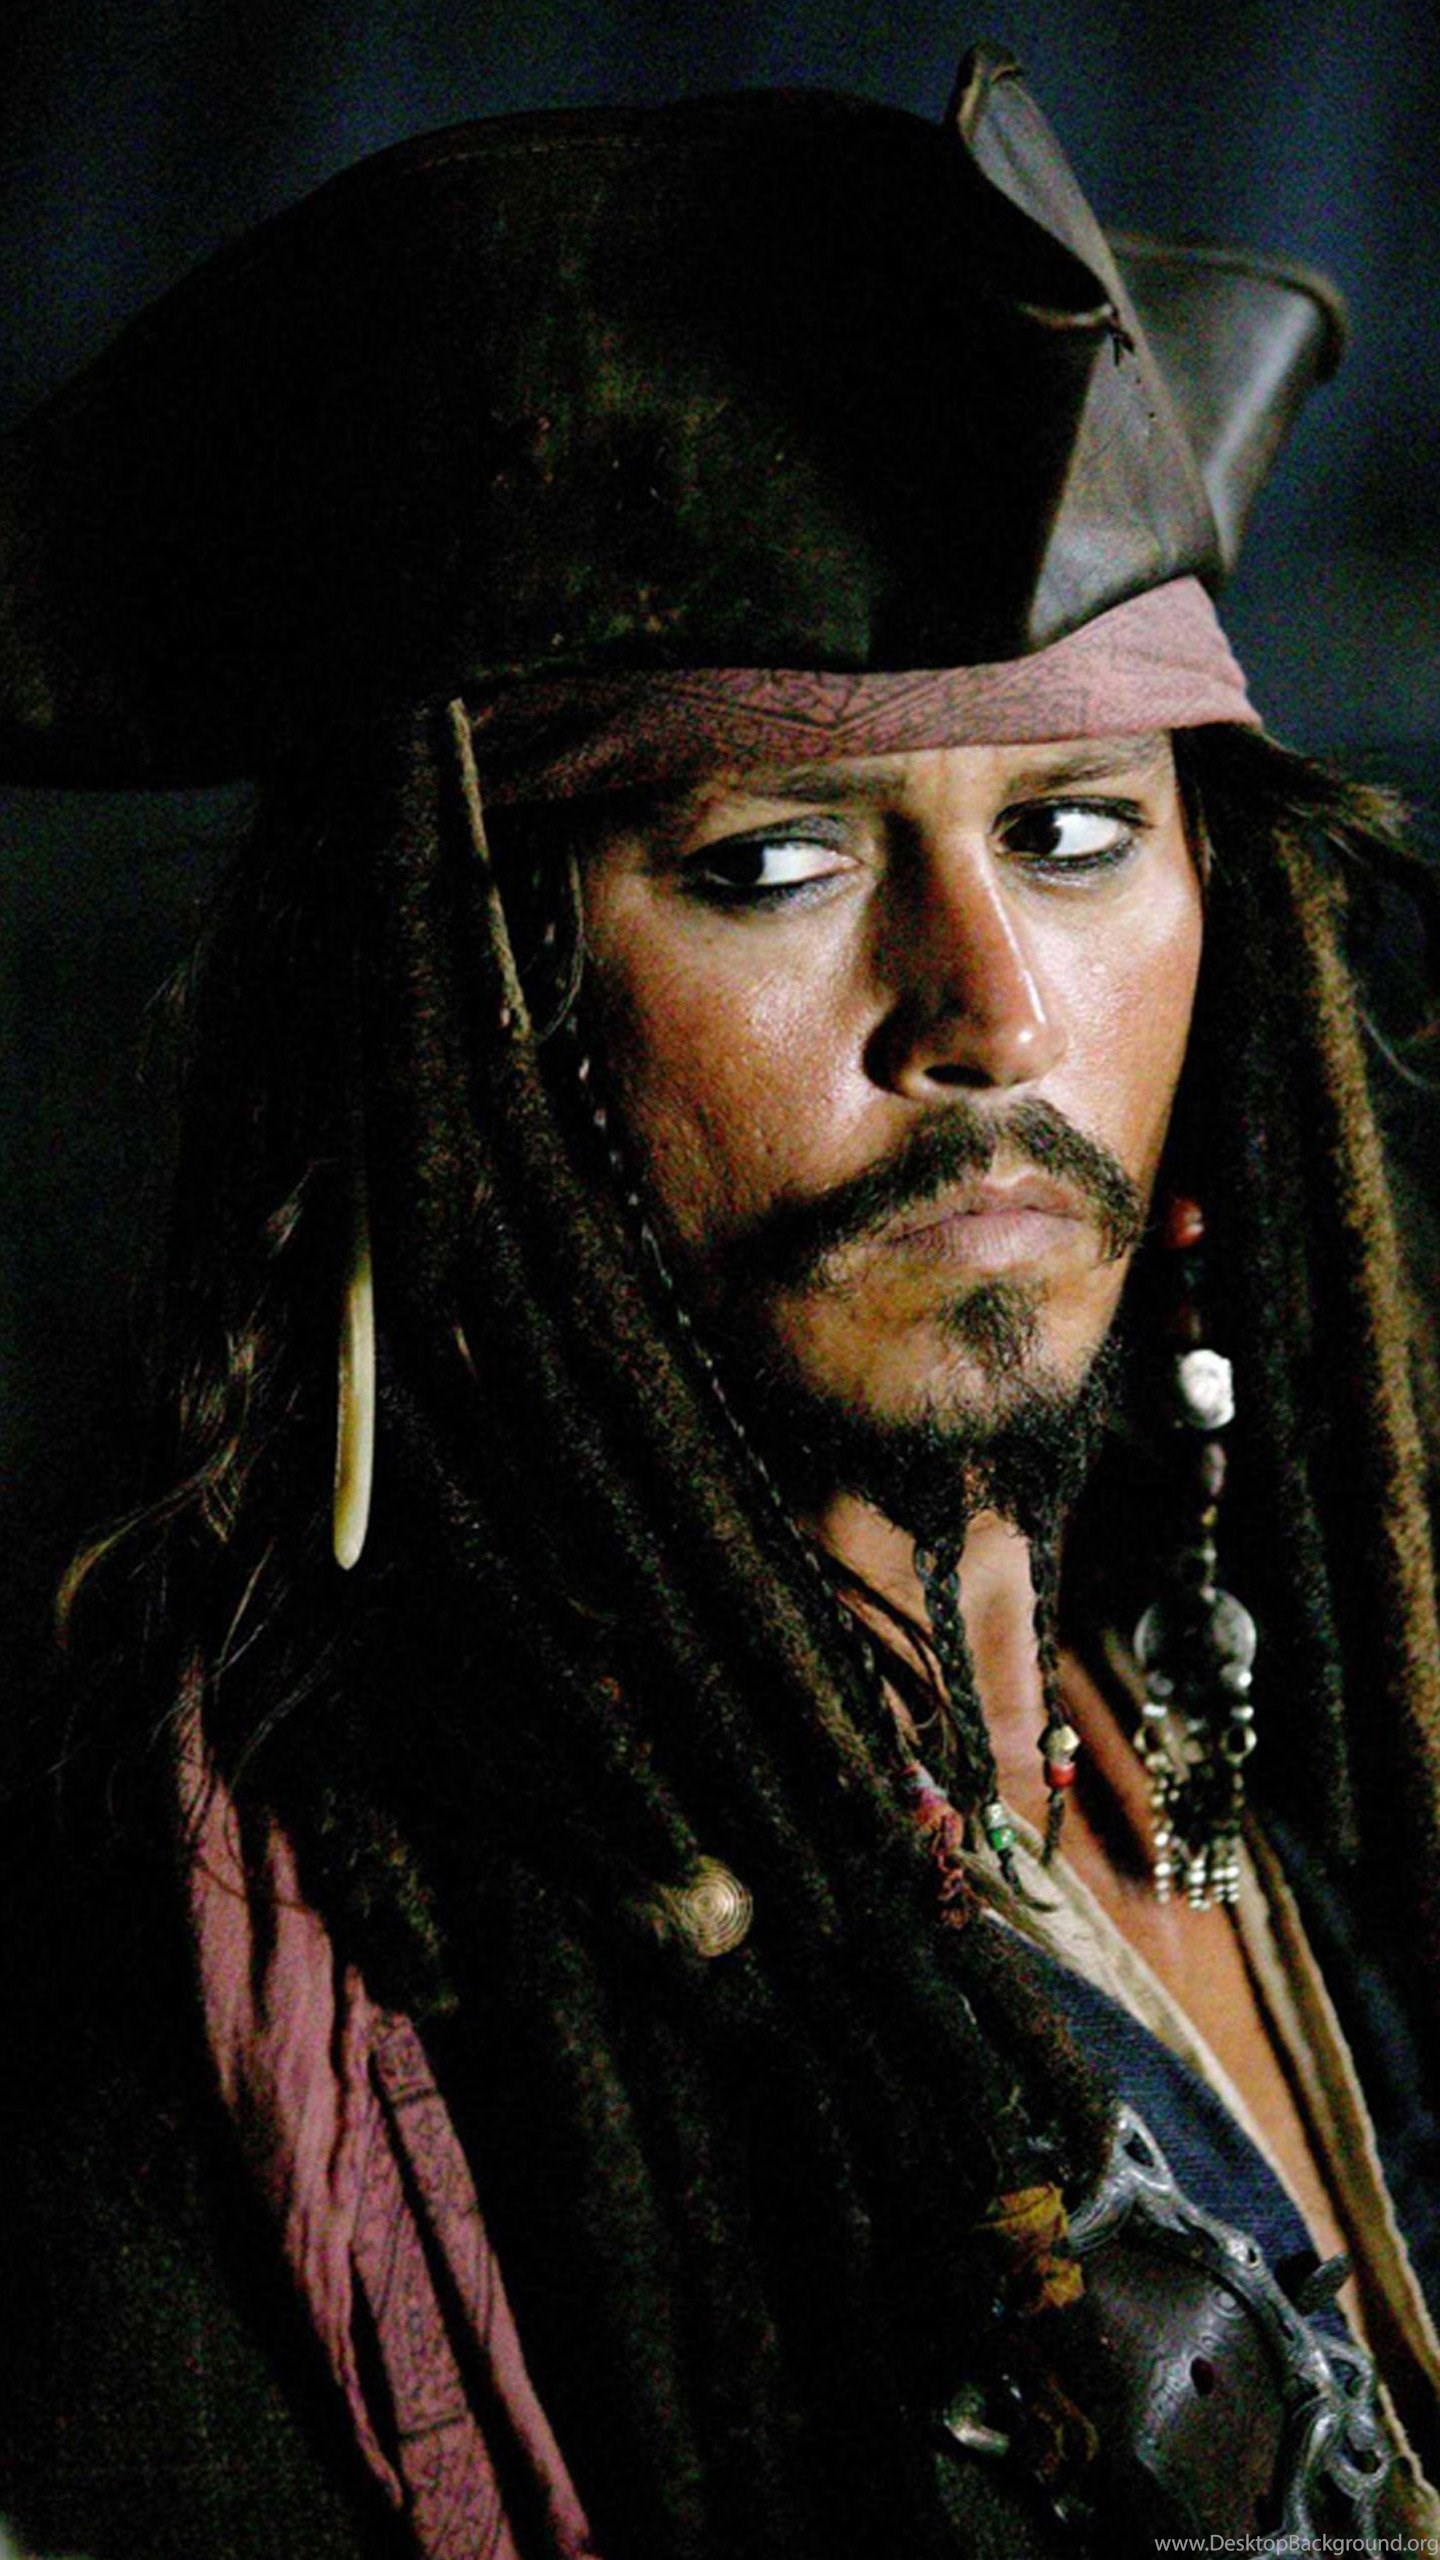 Resolution 1440x2560 Wallpaper Hd Jack Sparrow Mobile Android Desktop Background